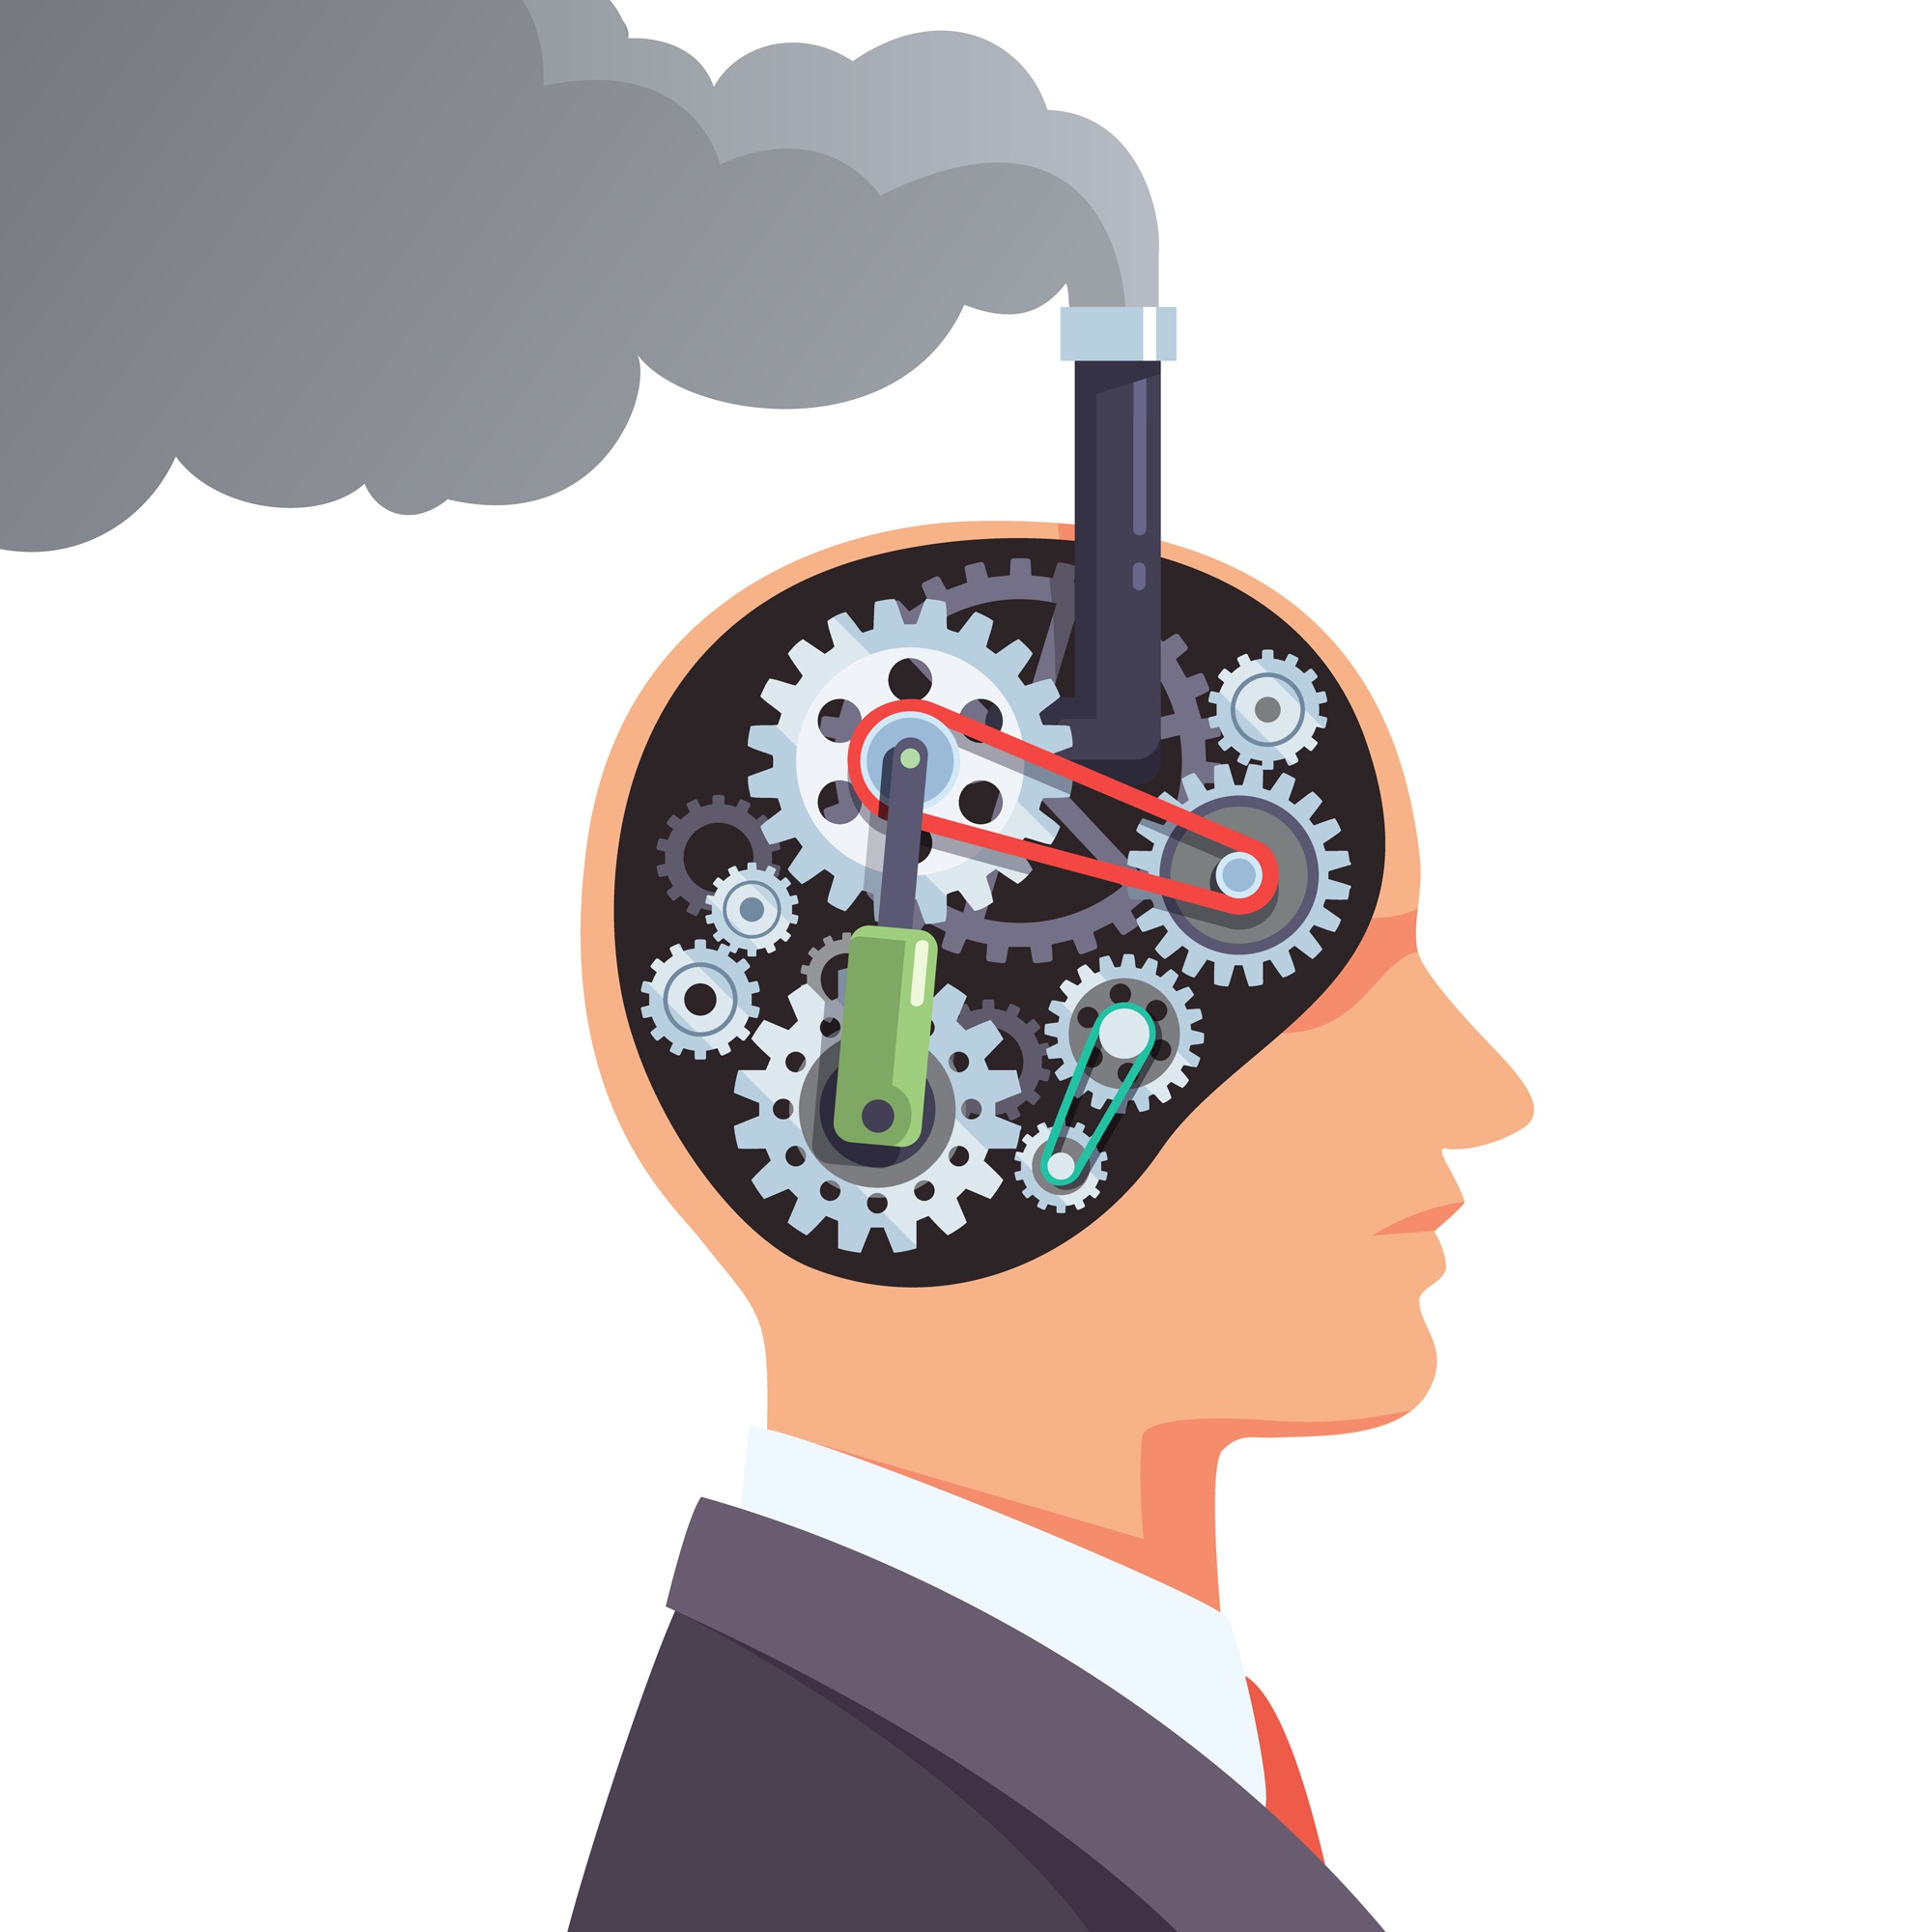 Steampunk brain engine with cogs and gears